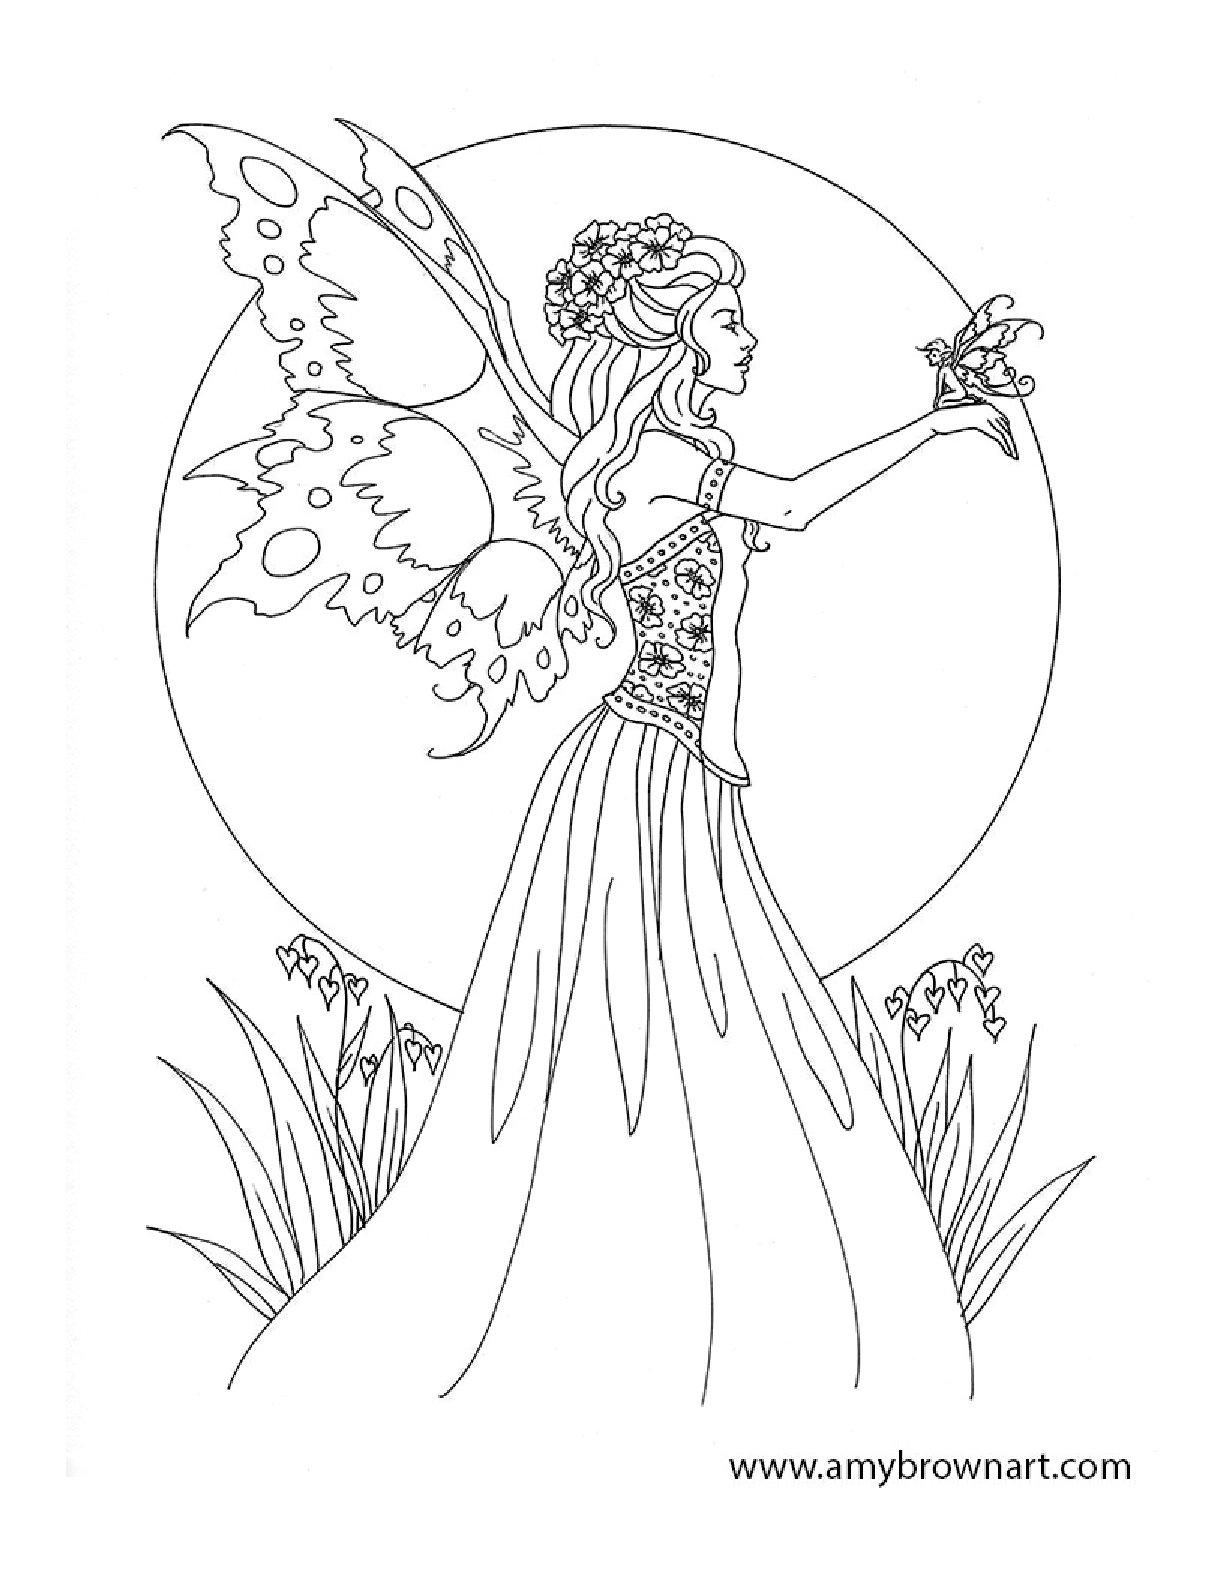 free amy brown fairy coloring pages fairie and elf coloring pages mermaid coloring pages. Black Bedroom Furniture Sets. Home Design Ideas